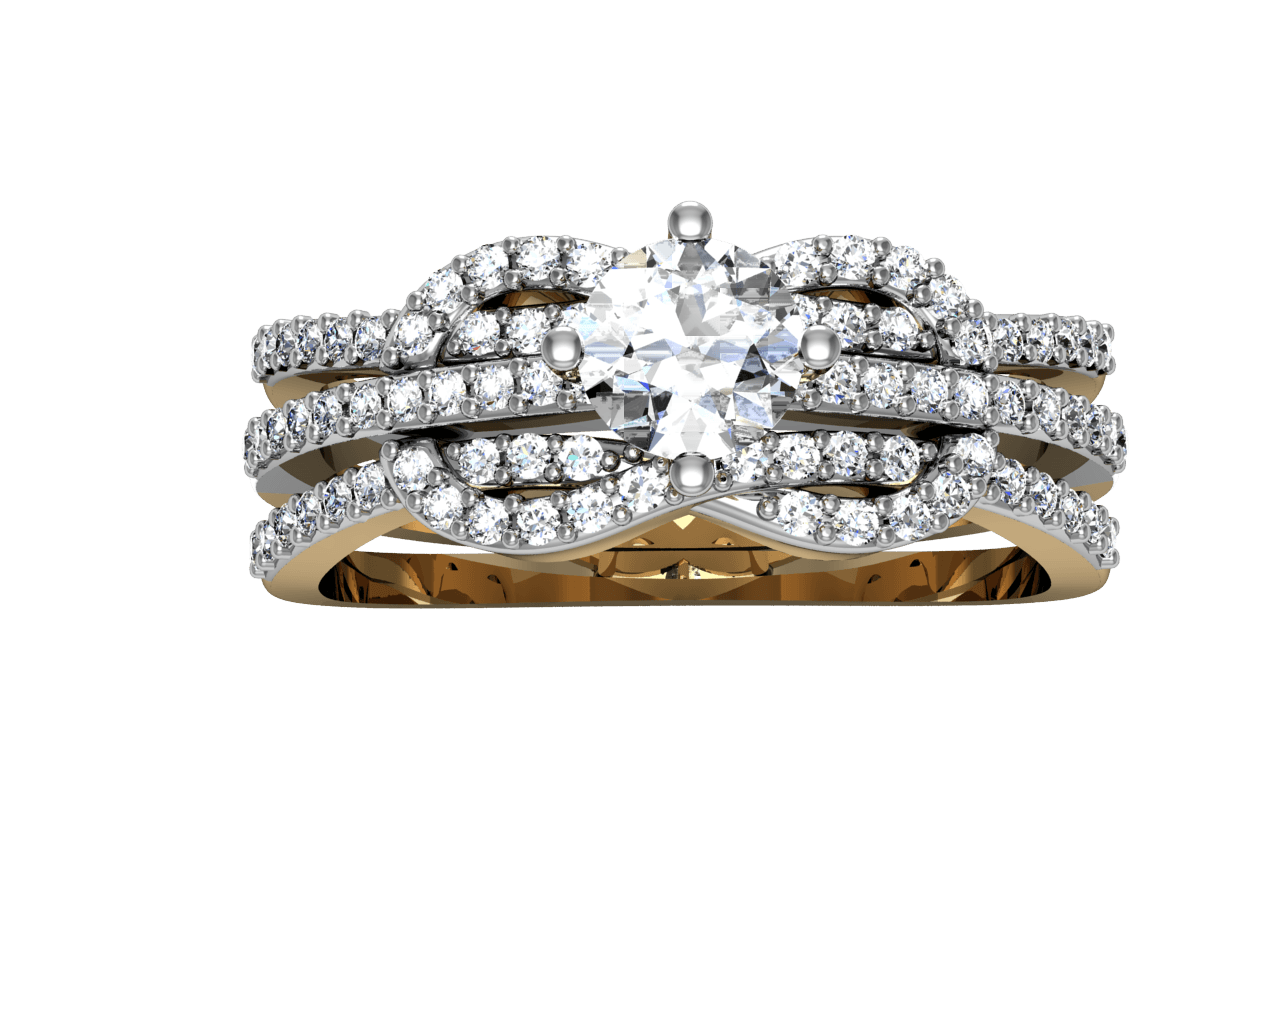 Silver Ring With Diamonds Png PNG Image